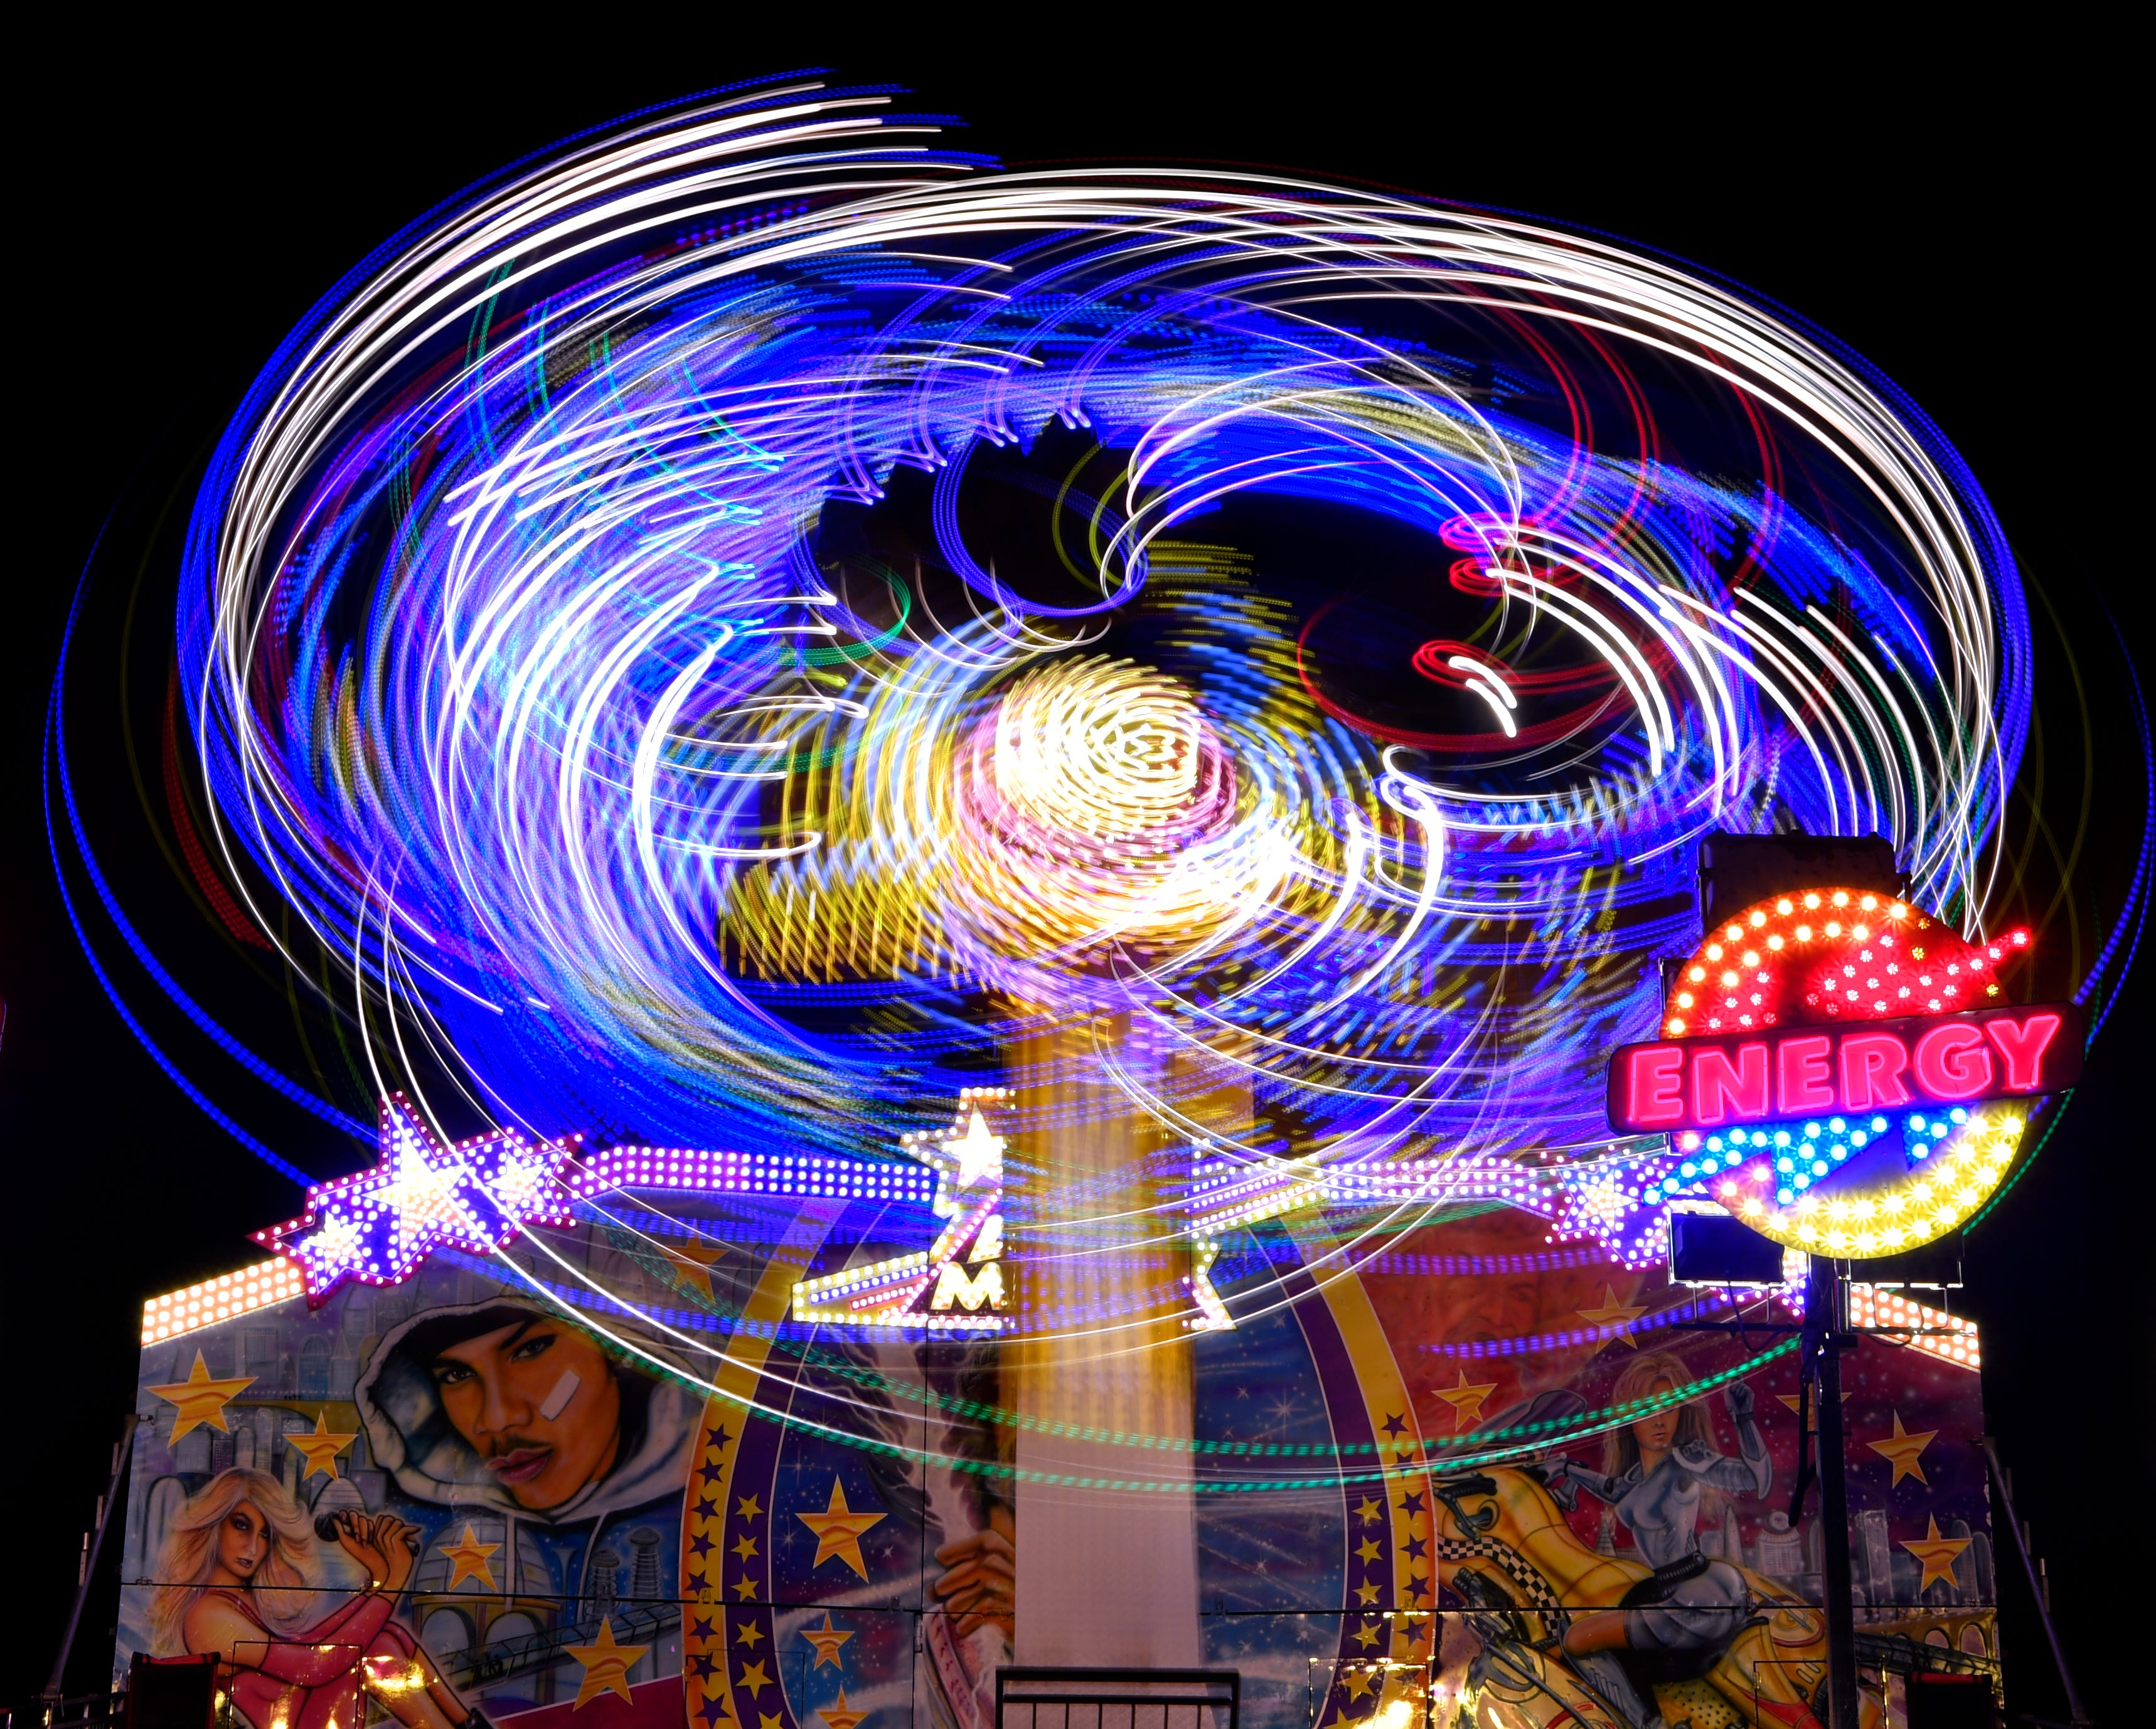 The lights of the Air Maxx at the West Texas Fair & Rodeo are blurred into a swirling pattern in this long exposure Thursday Sept. 6, 2018.